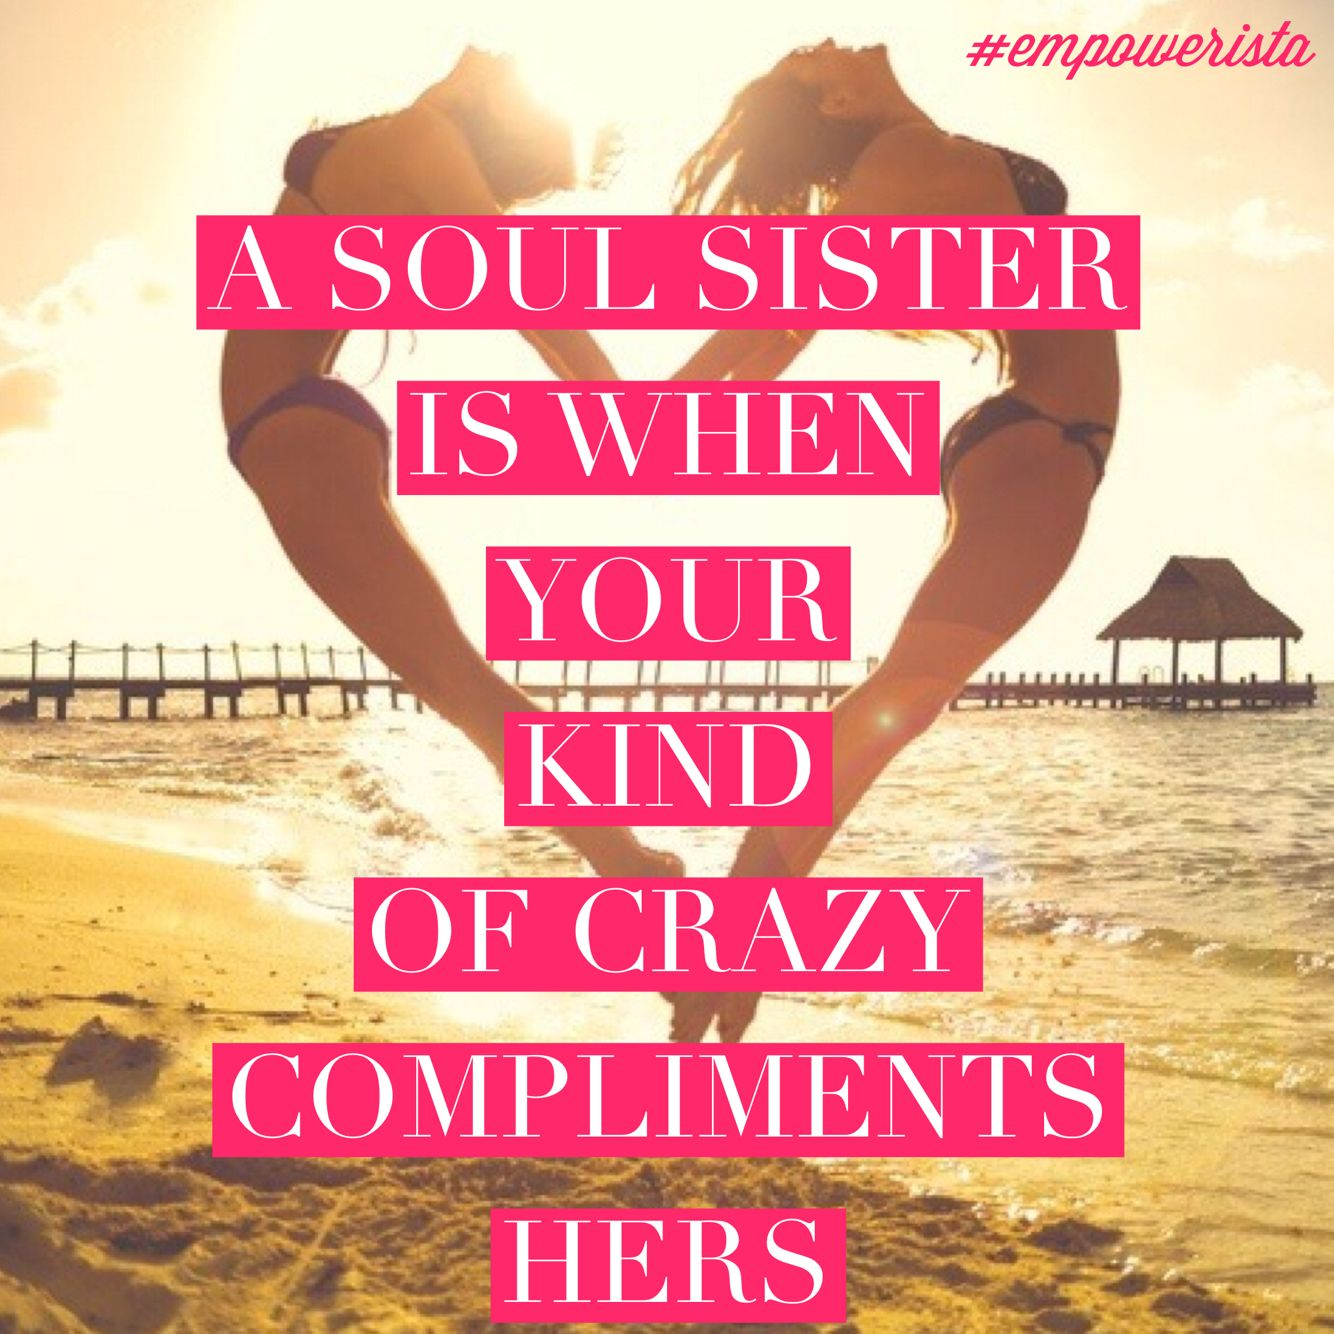 Shout Out To Our Soul Sisters This Valentine S Day Weekend Soulsister Soulsisters Sisterhood Tribe Sist Soul Sisters Inspirational Quotes Great Quotes